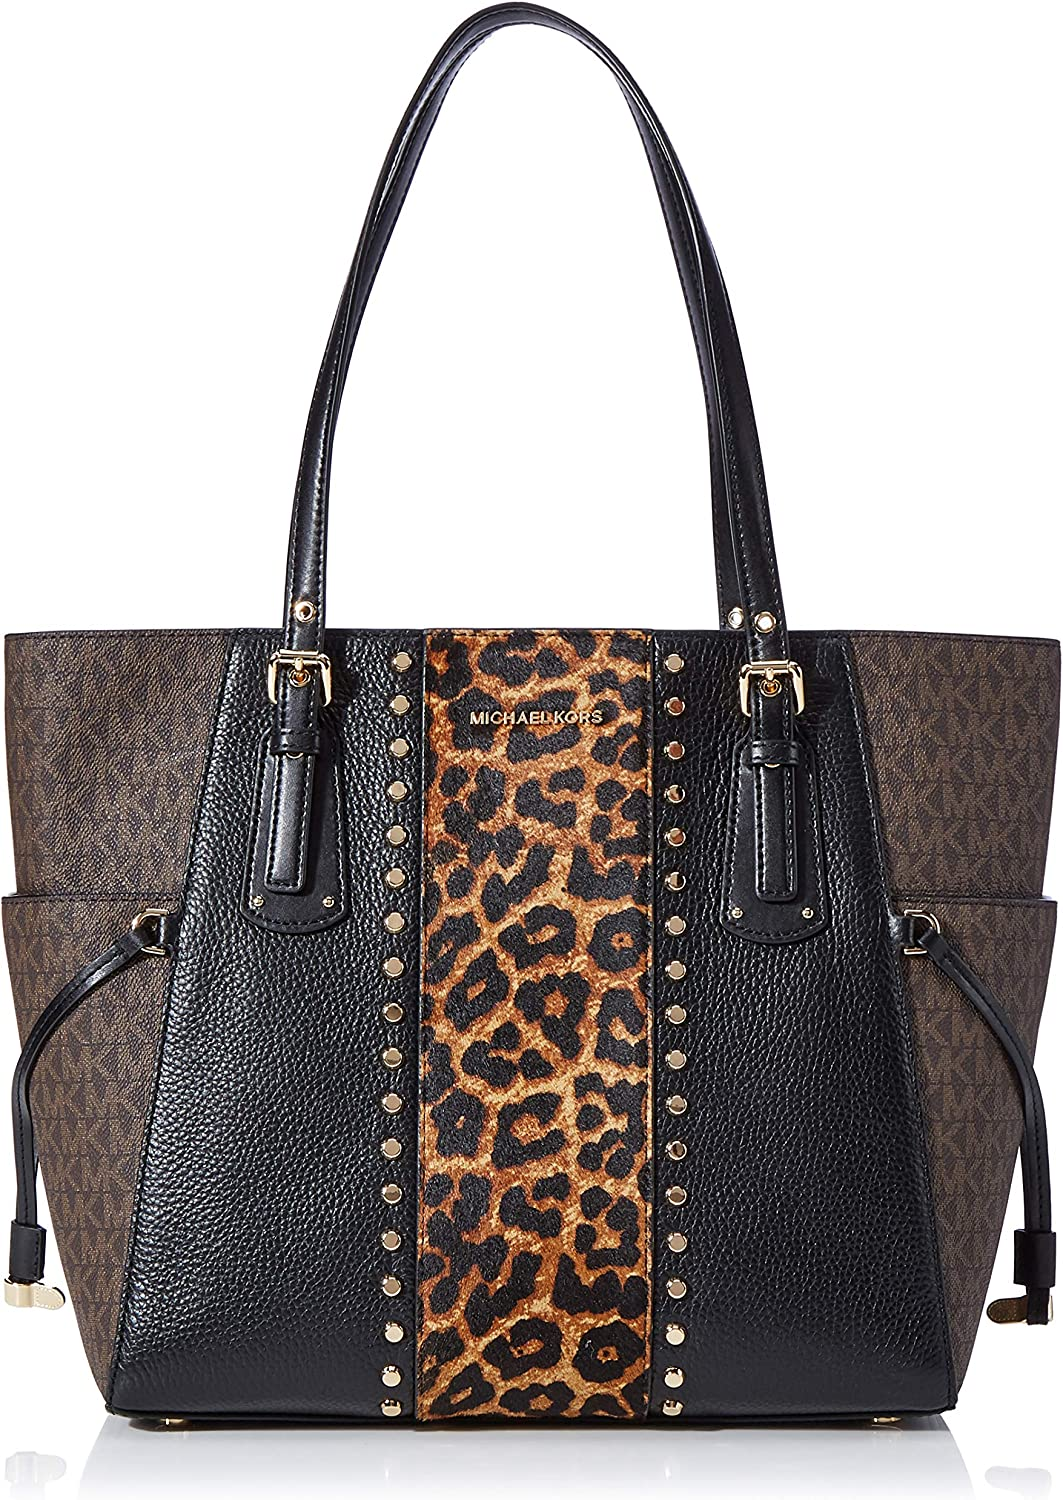 Michael Kors Bag, Multicolour (Brown Multi 212)